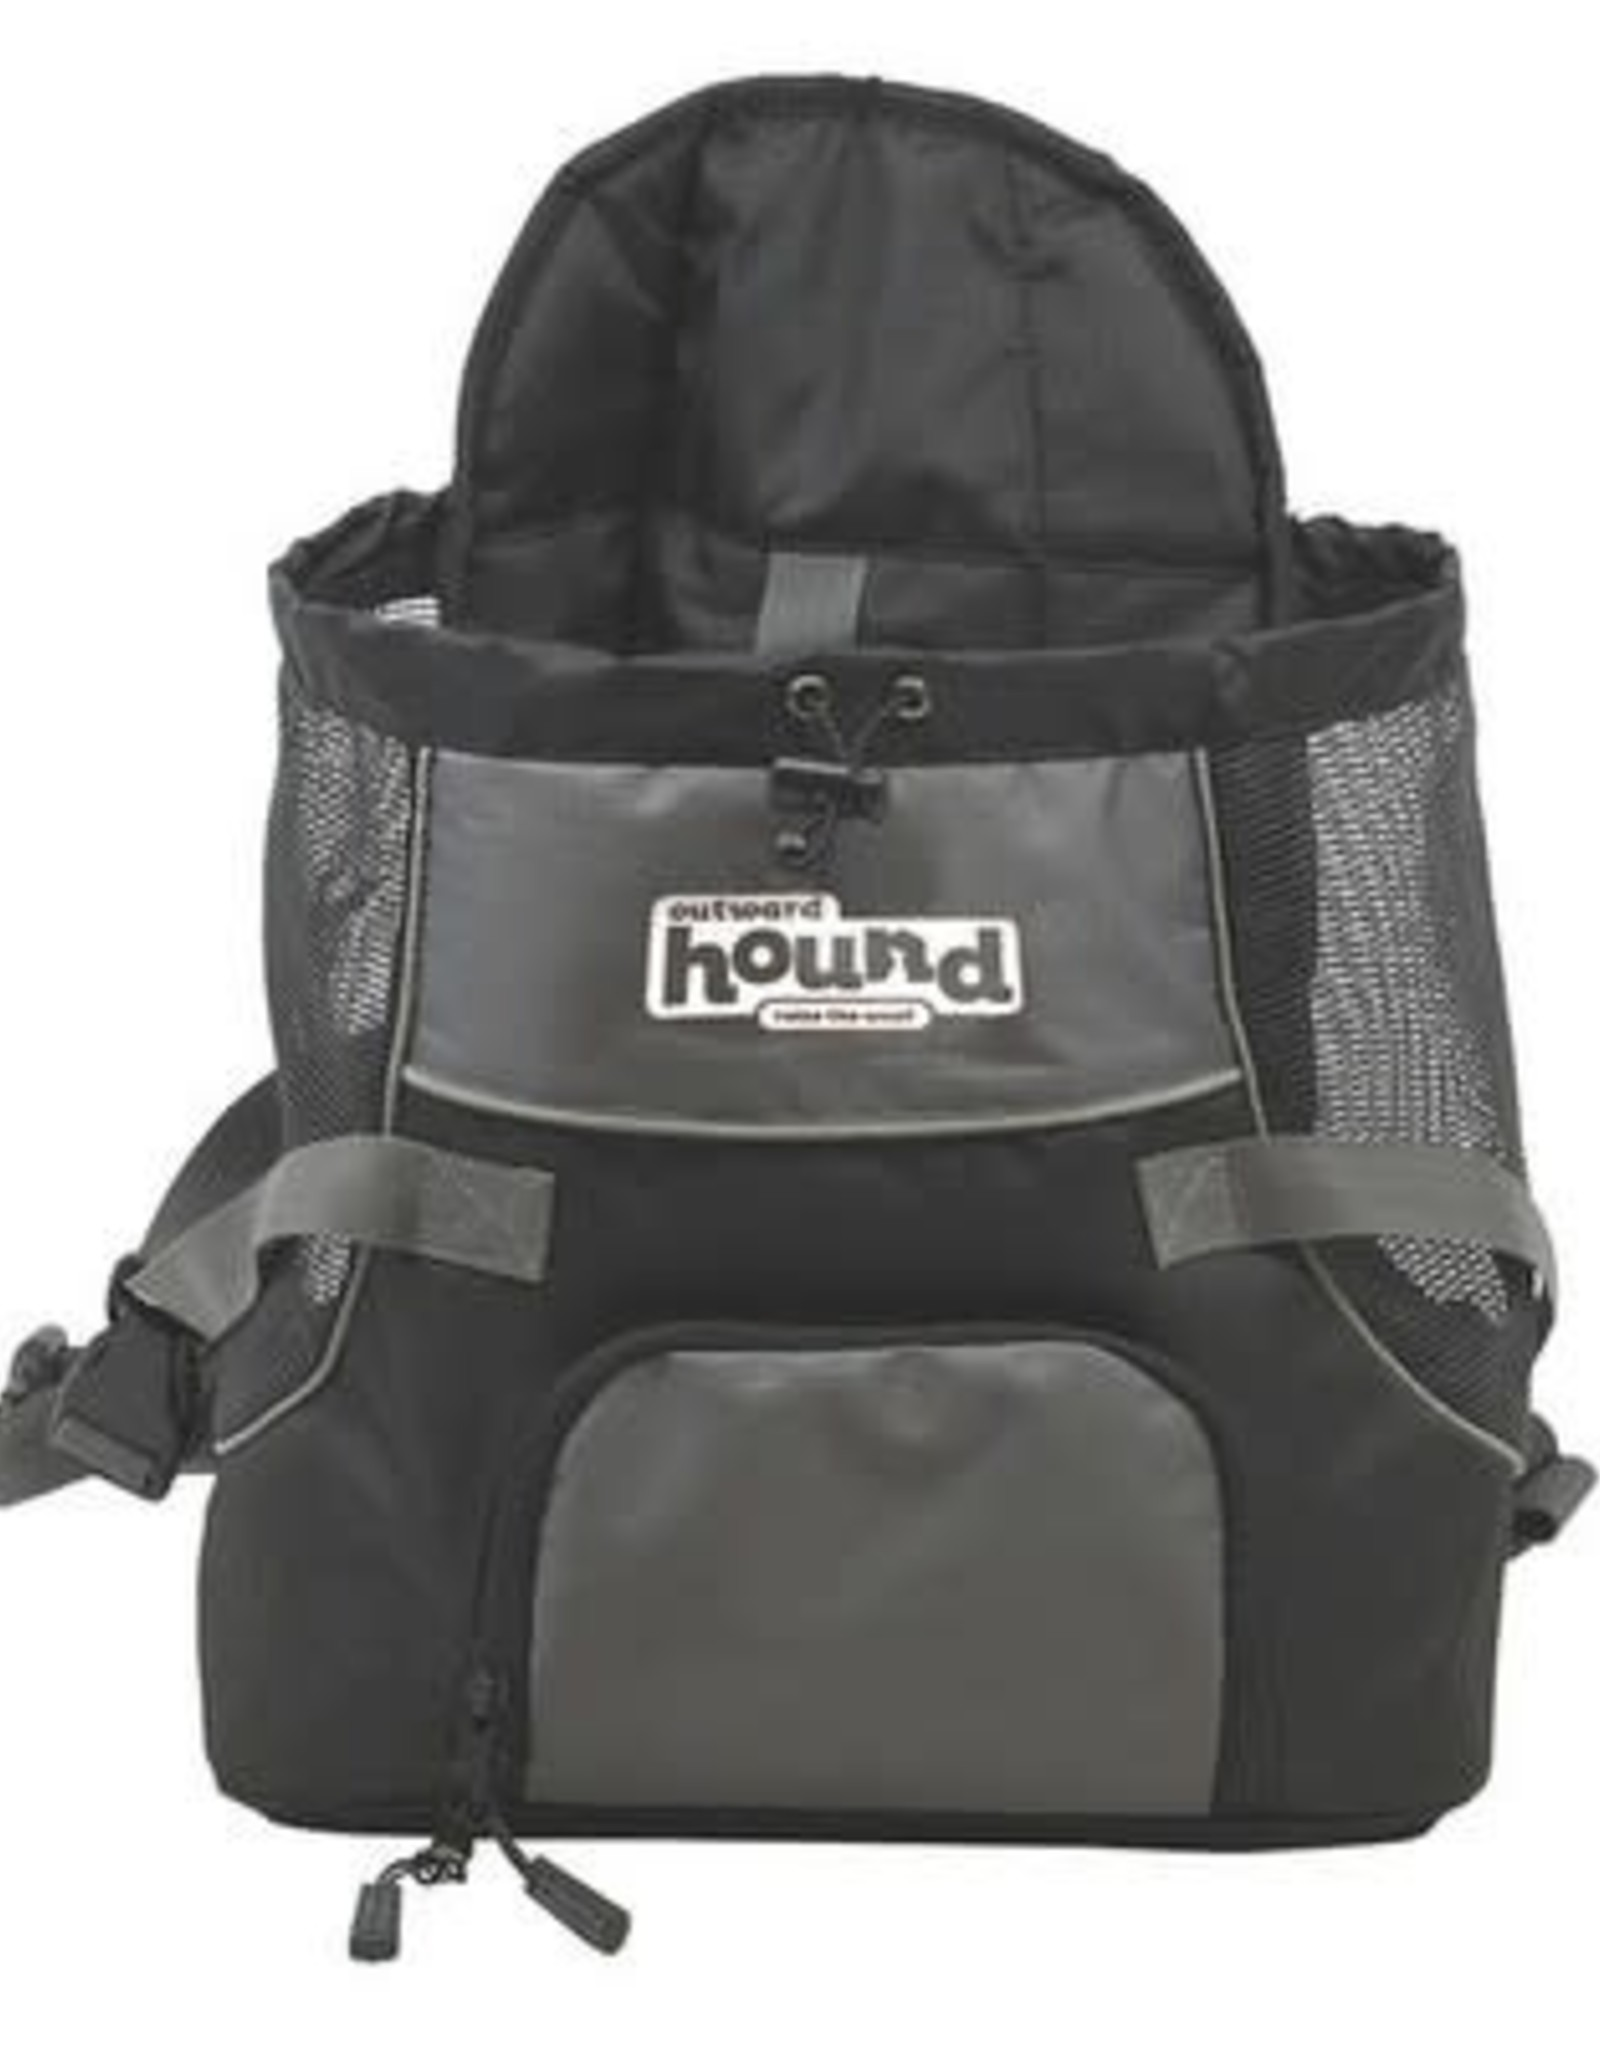 Outward Hound Outward Hound PoochPouch Front Backpack